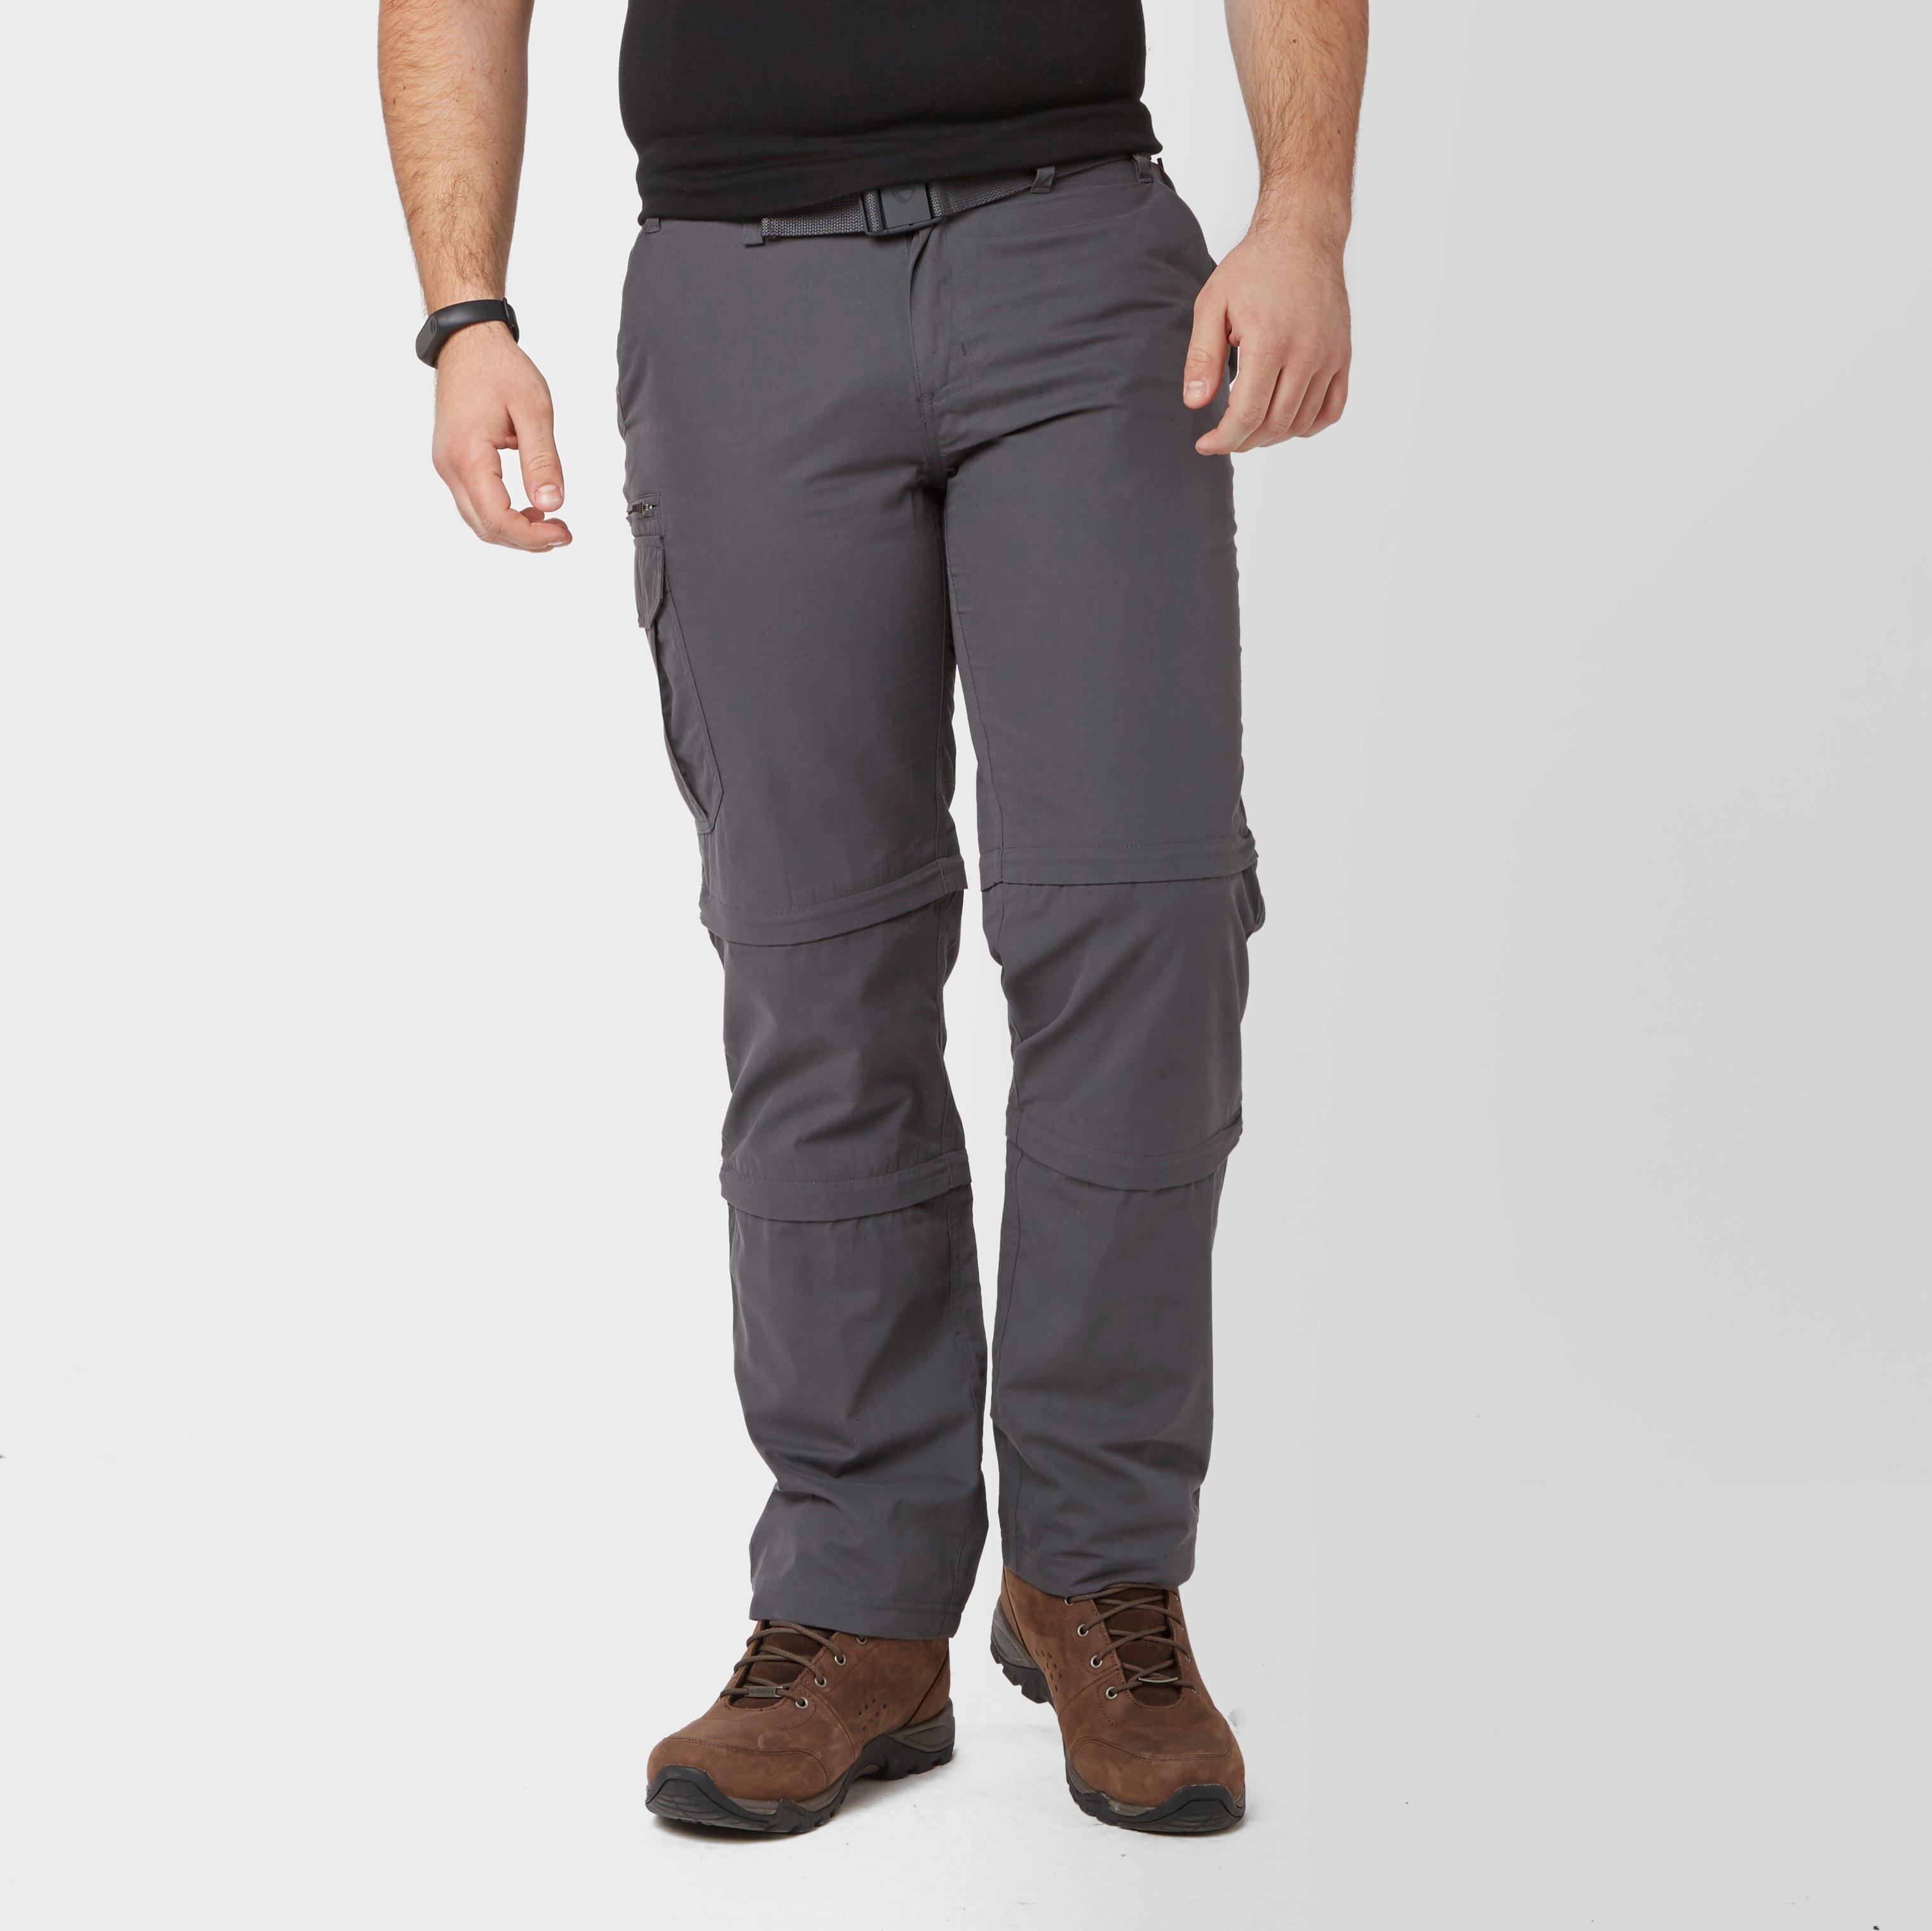 Brasher Mens Double Zip-off Trousers - Grey/gry  Grey/gry